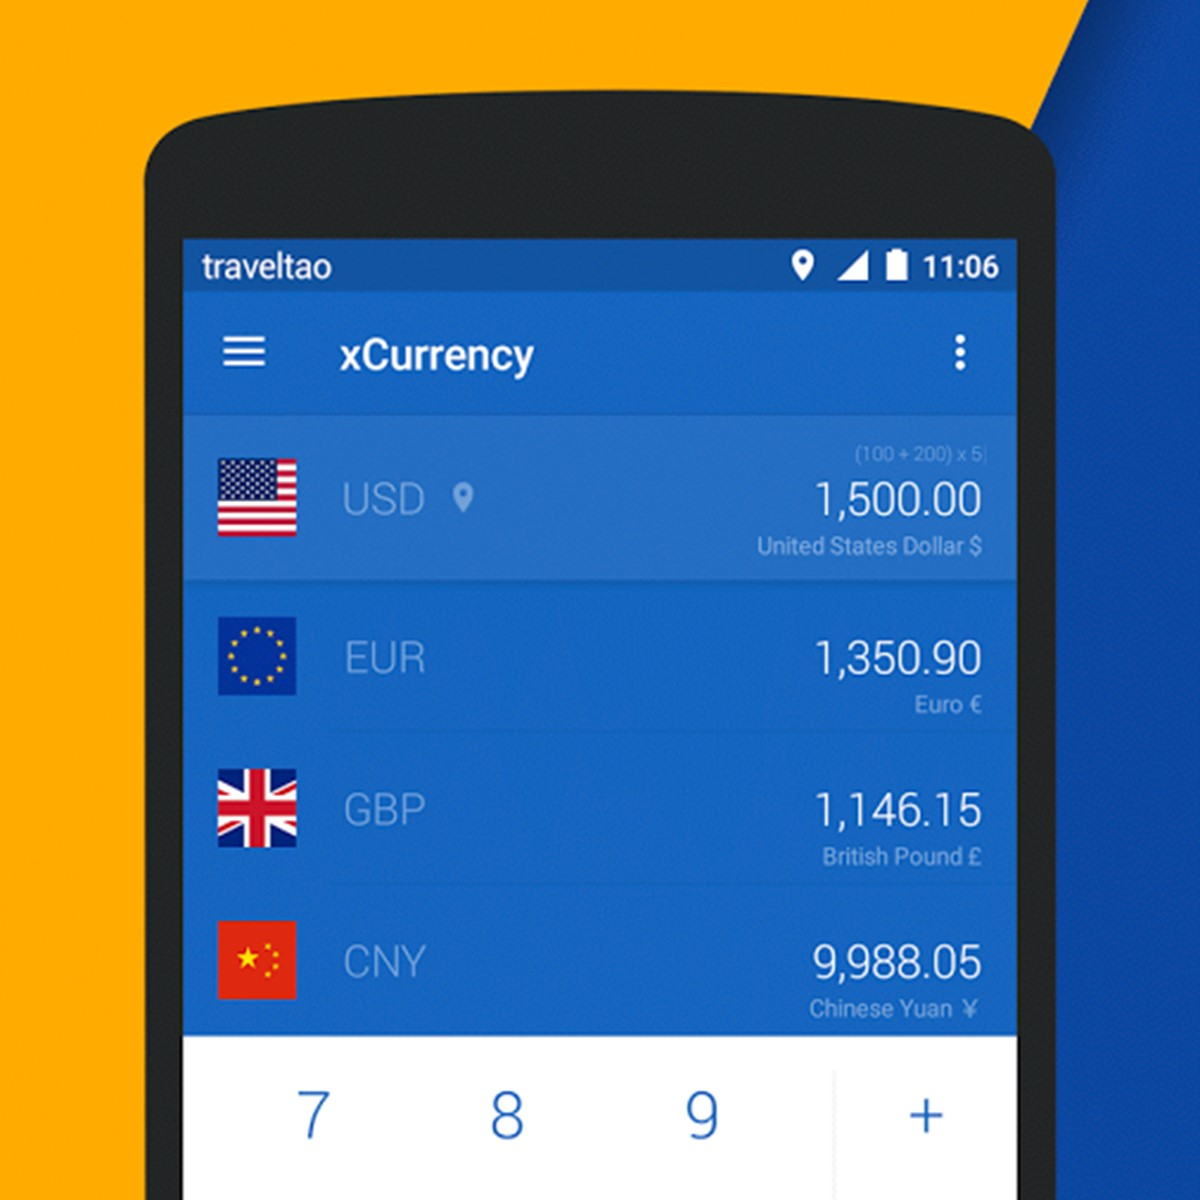 xCurrency - Smart Currency Alternatives and Similar Apps